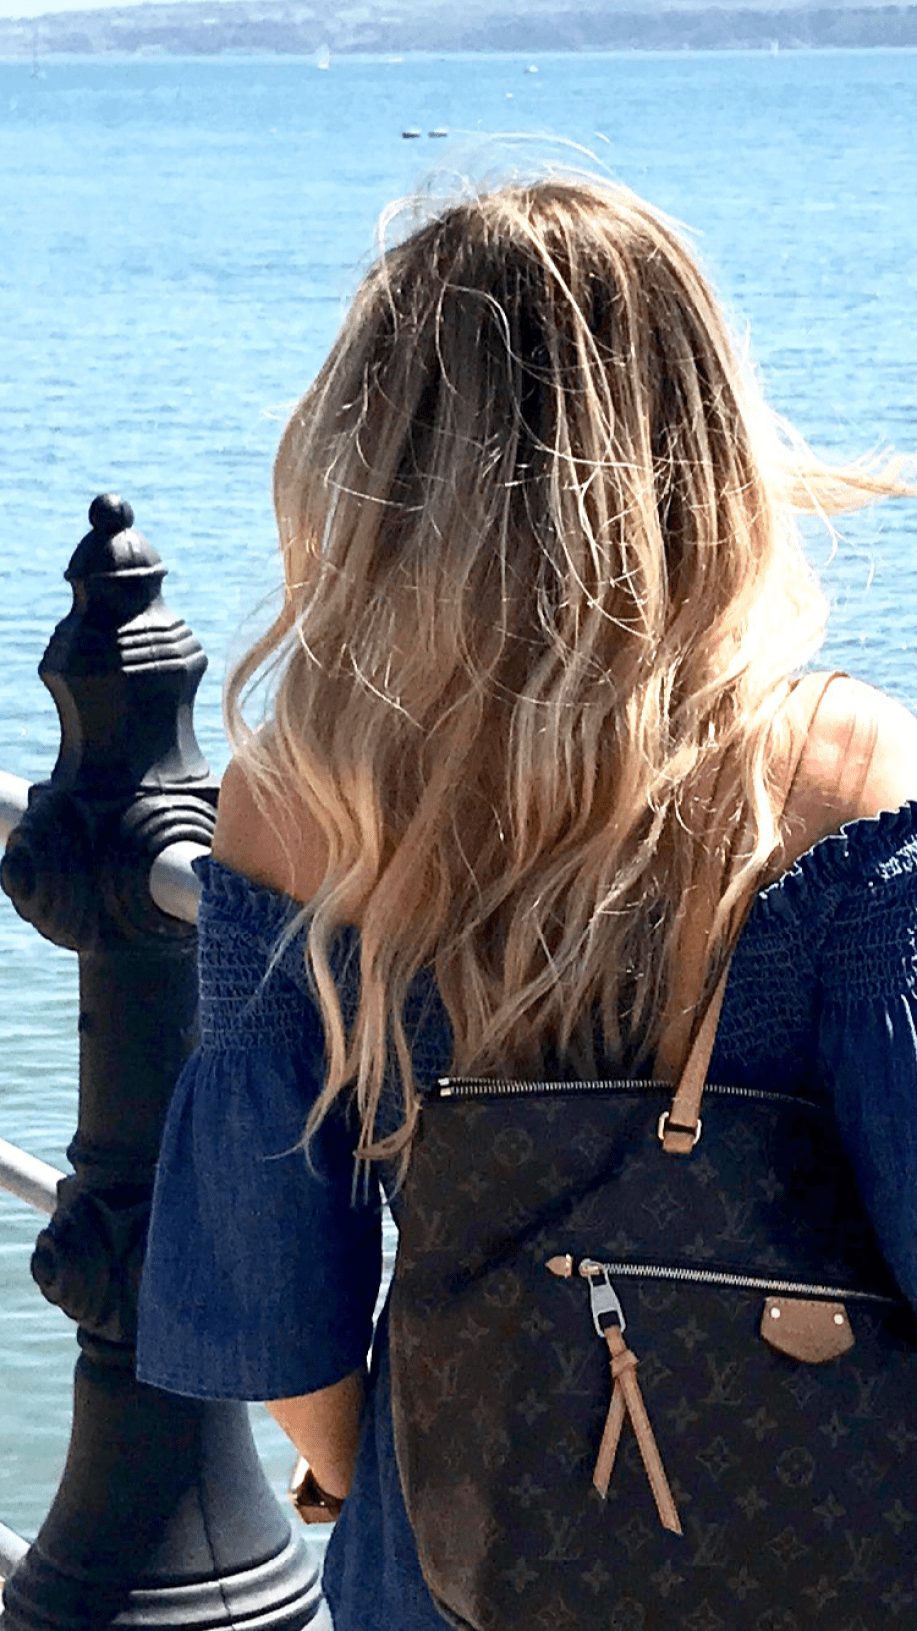 Should we wash our hair more often?